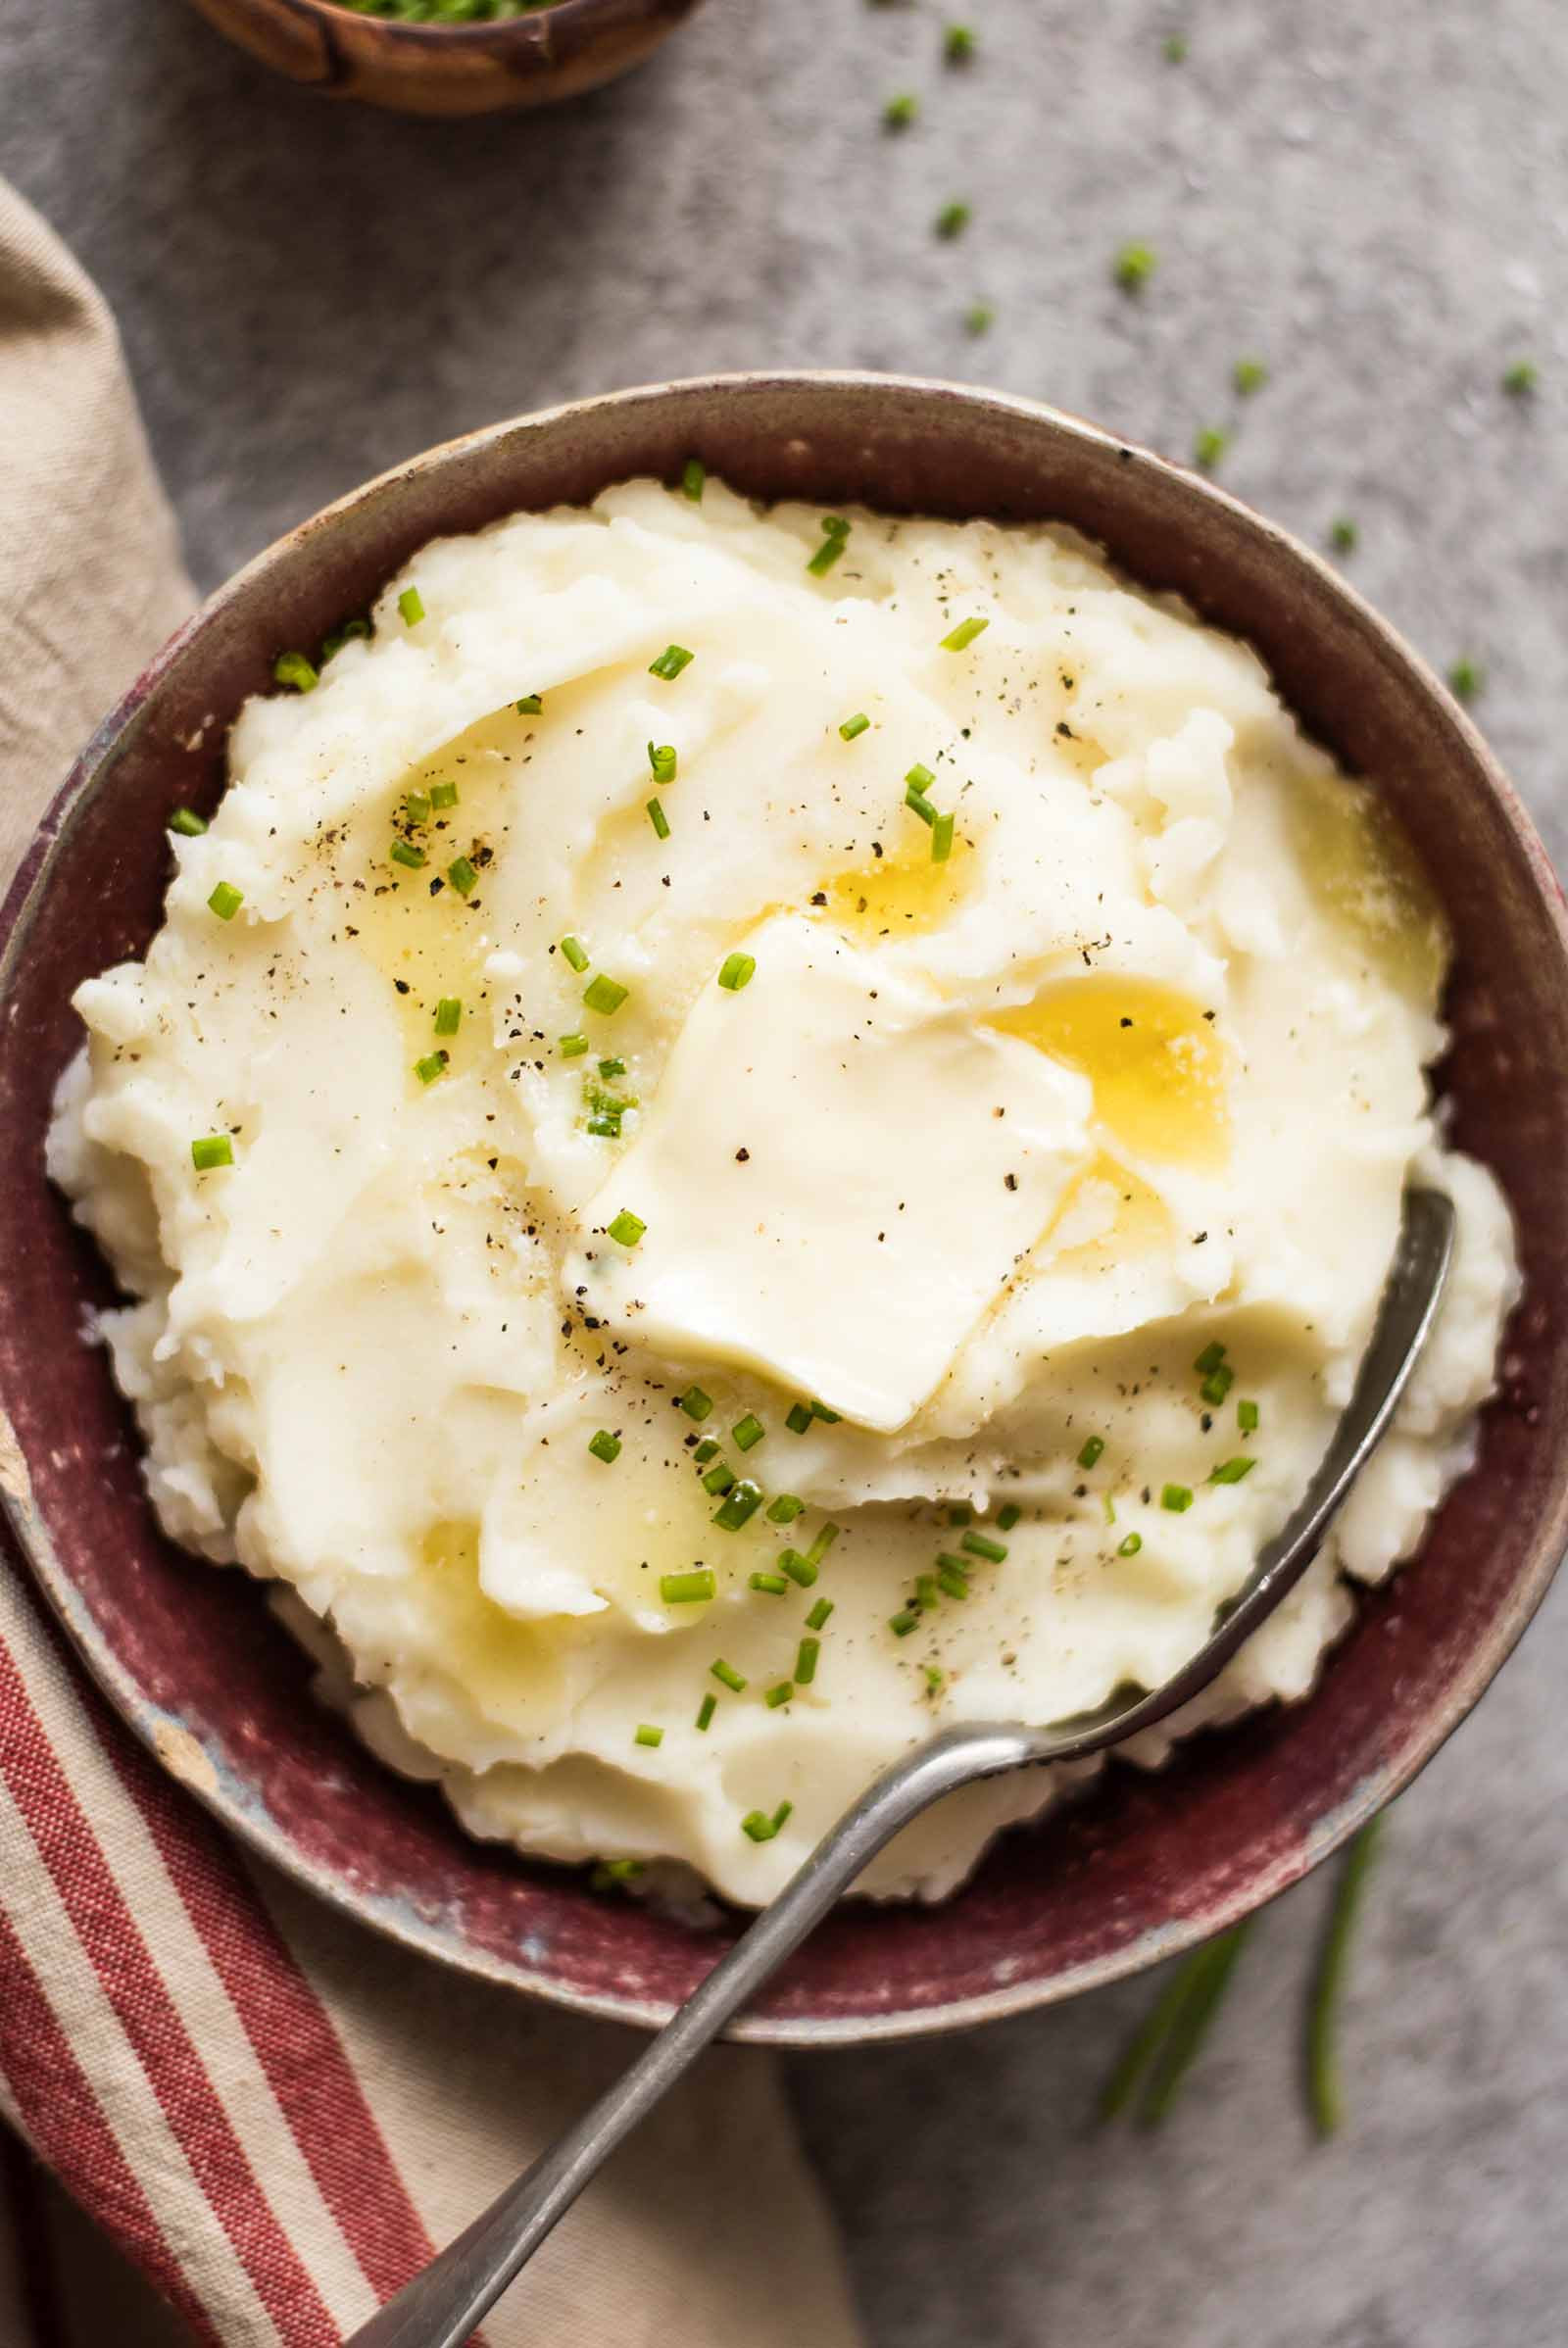 Best Mashed Potatoes For Thanksgiving  Crock Pot Mashed Potatoes Easy & No Stress